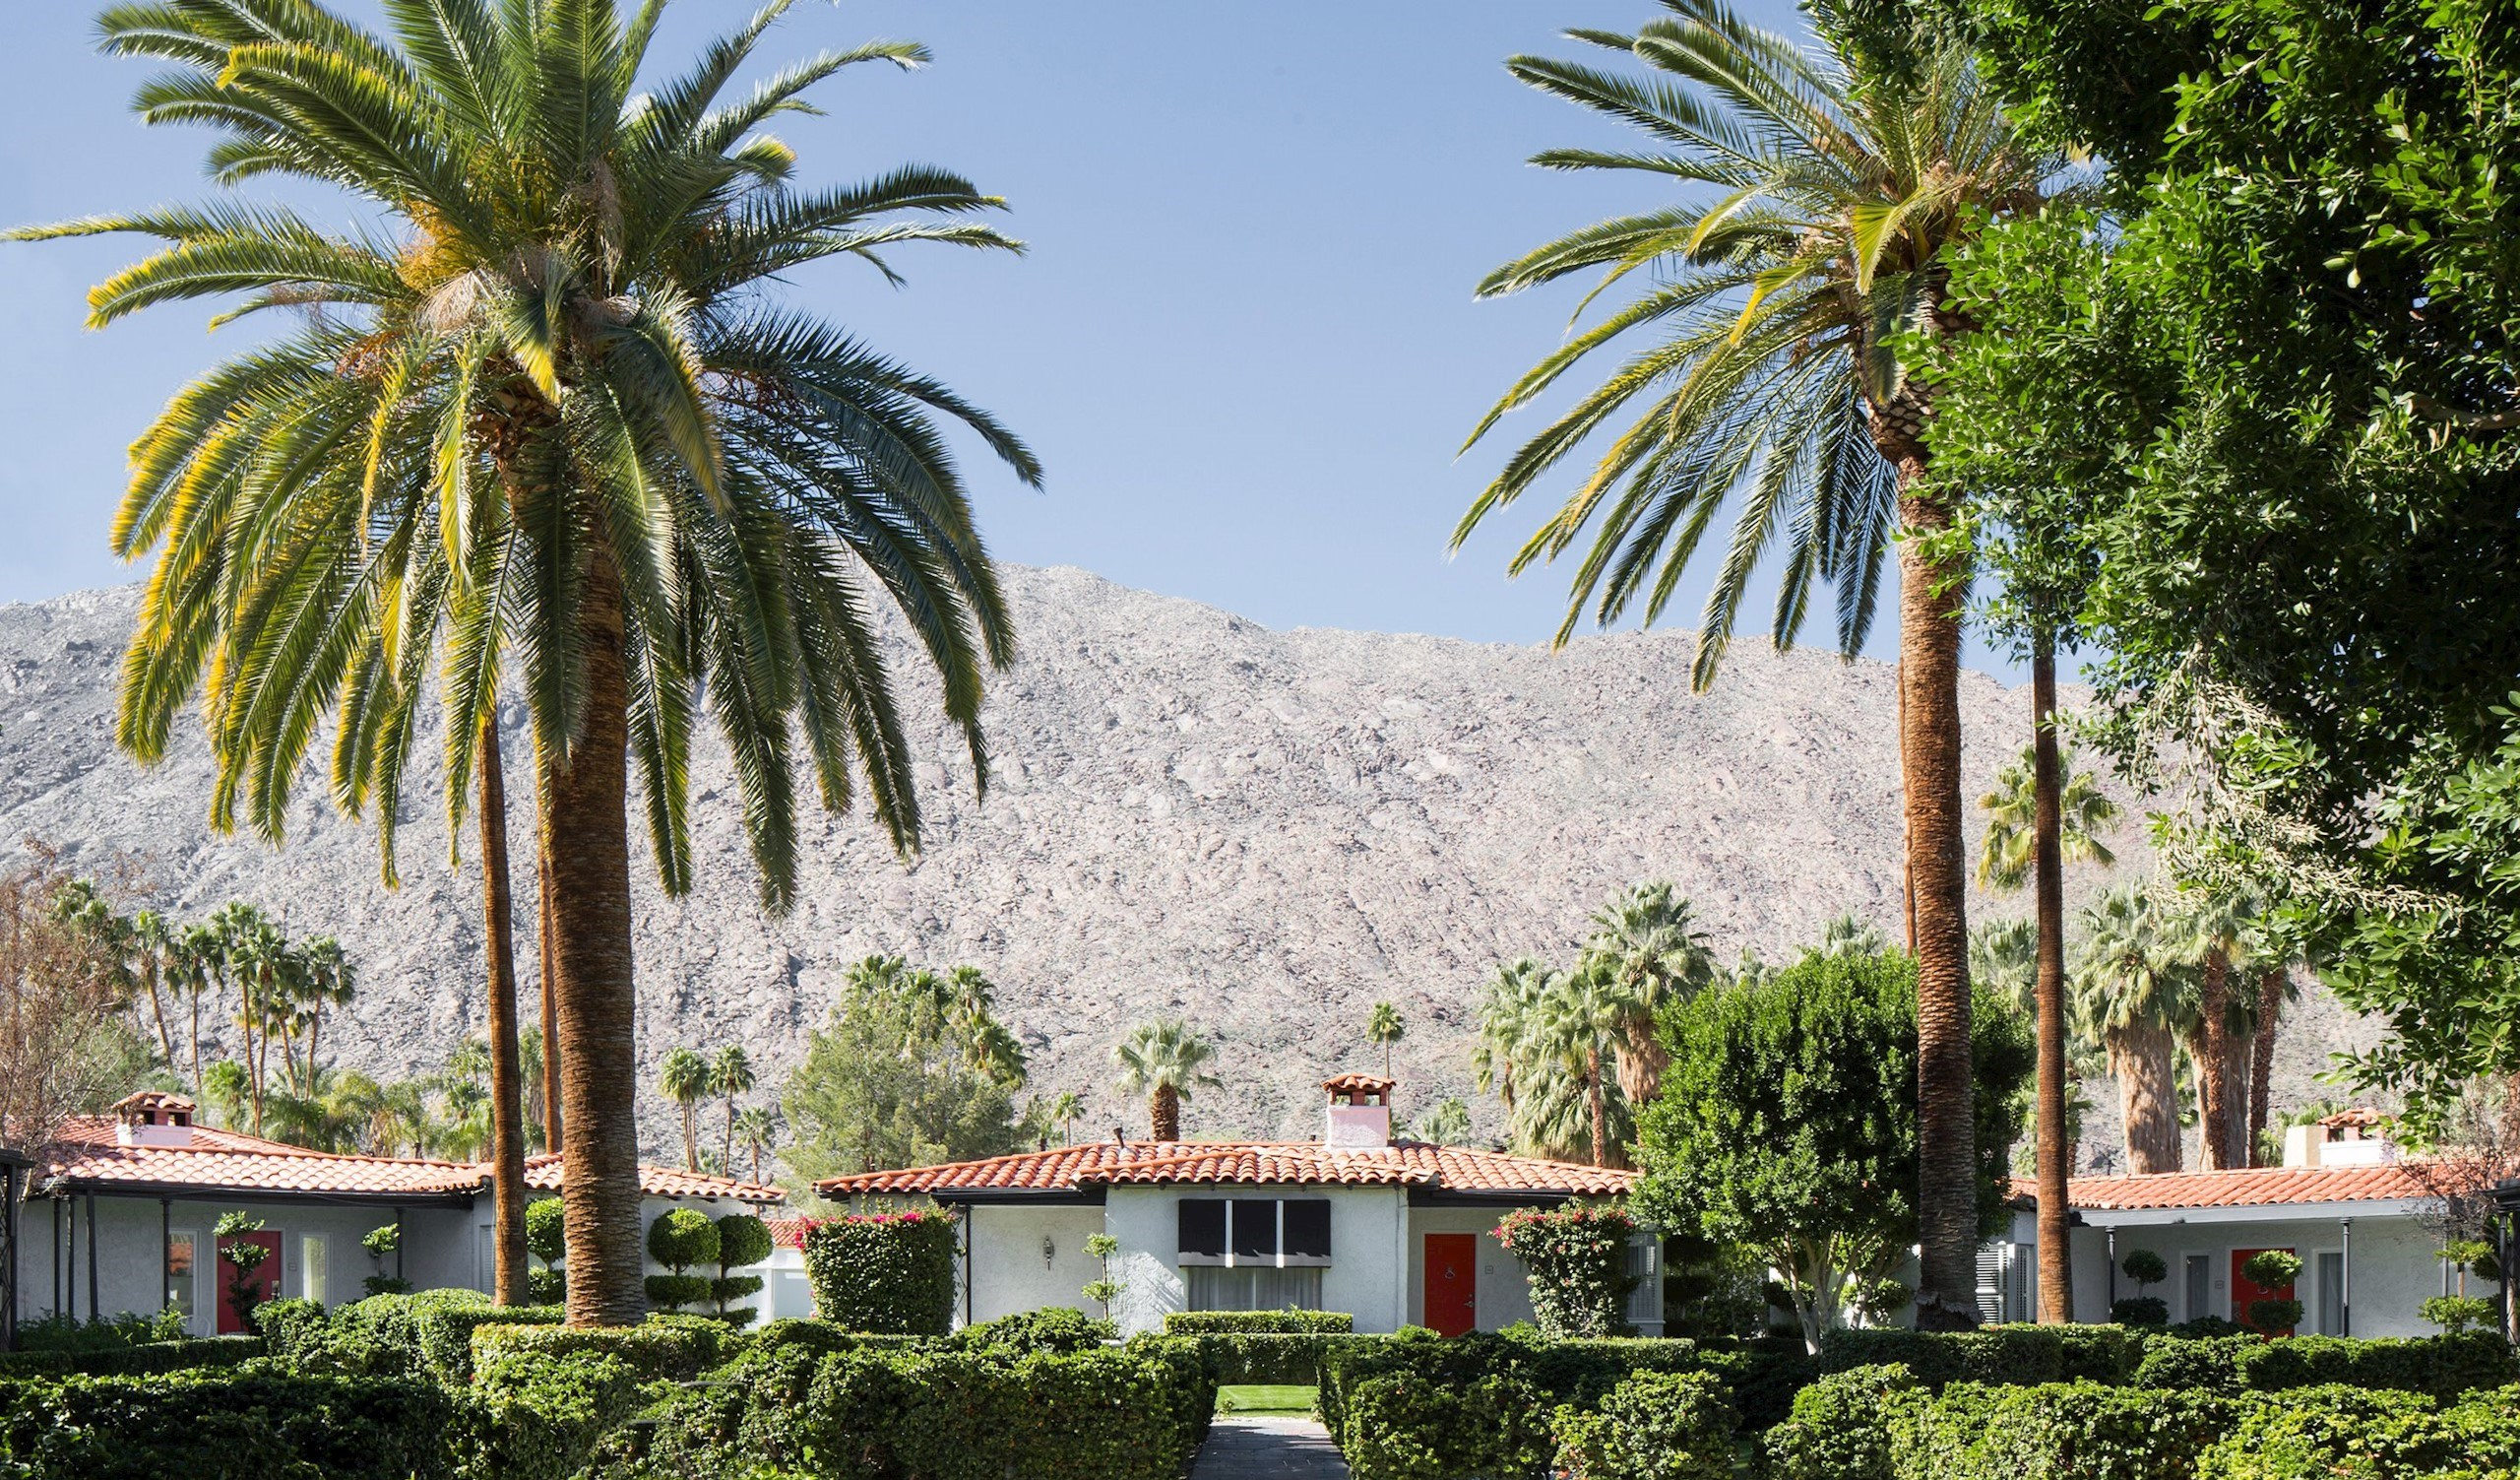 Avalon Hotel Palm Springs Landscape in Palm Springs